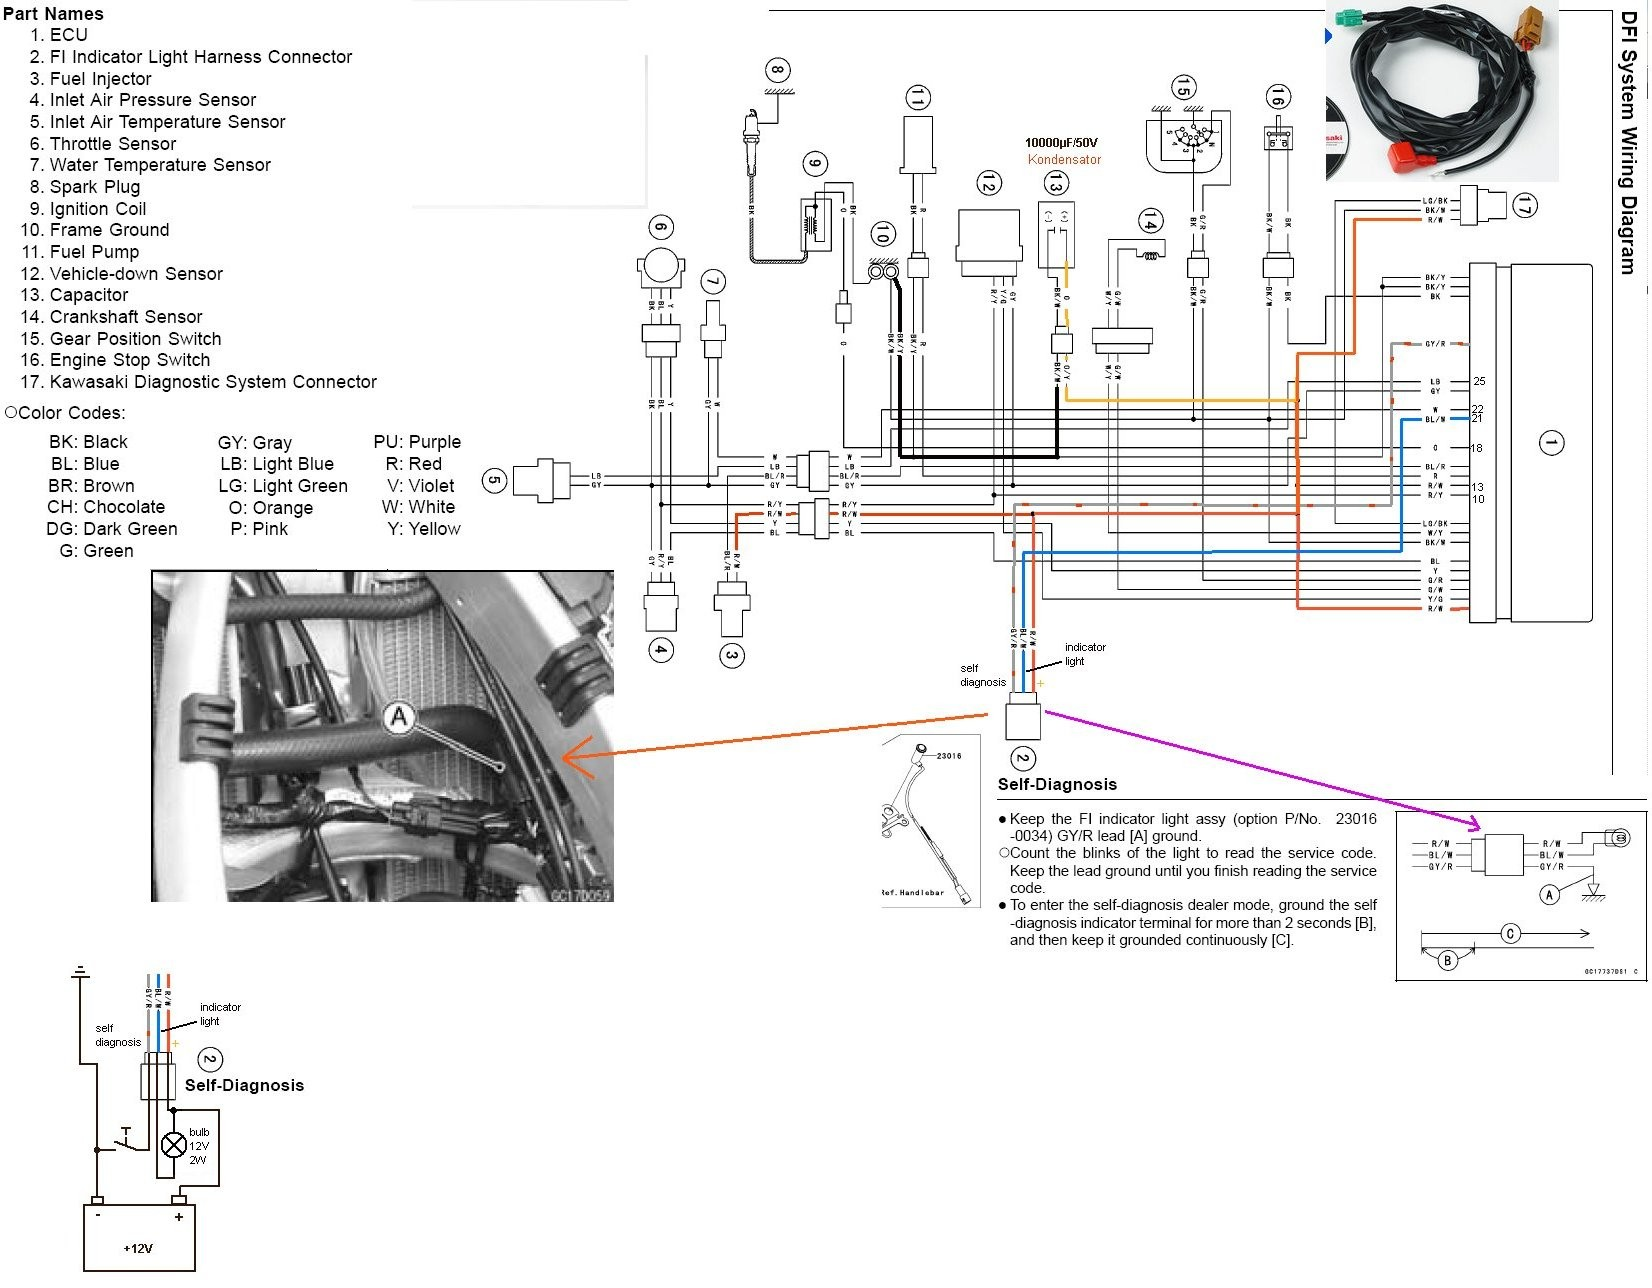 [DIAGRAM] Zongshen 250 Dirt Bike Wiring Diagram FULL